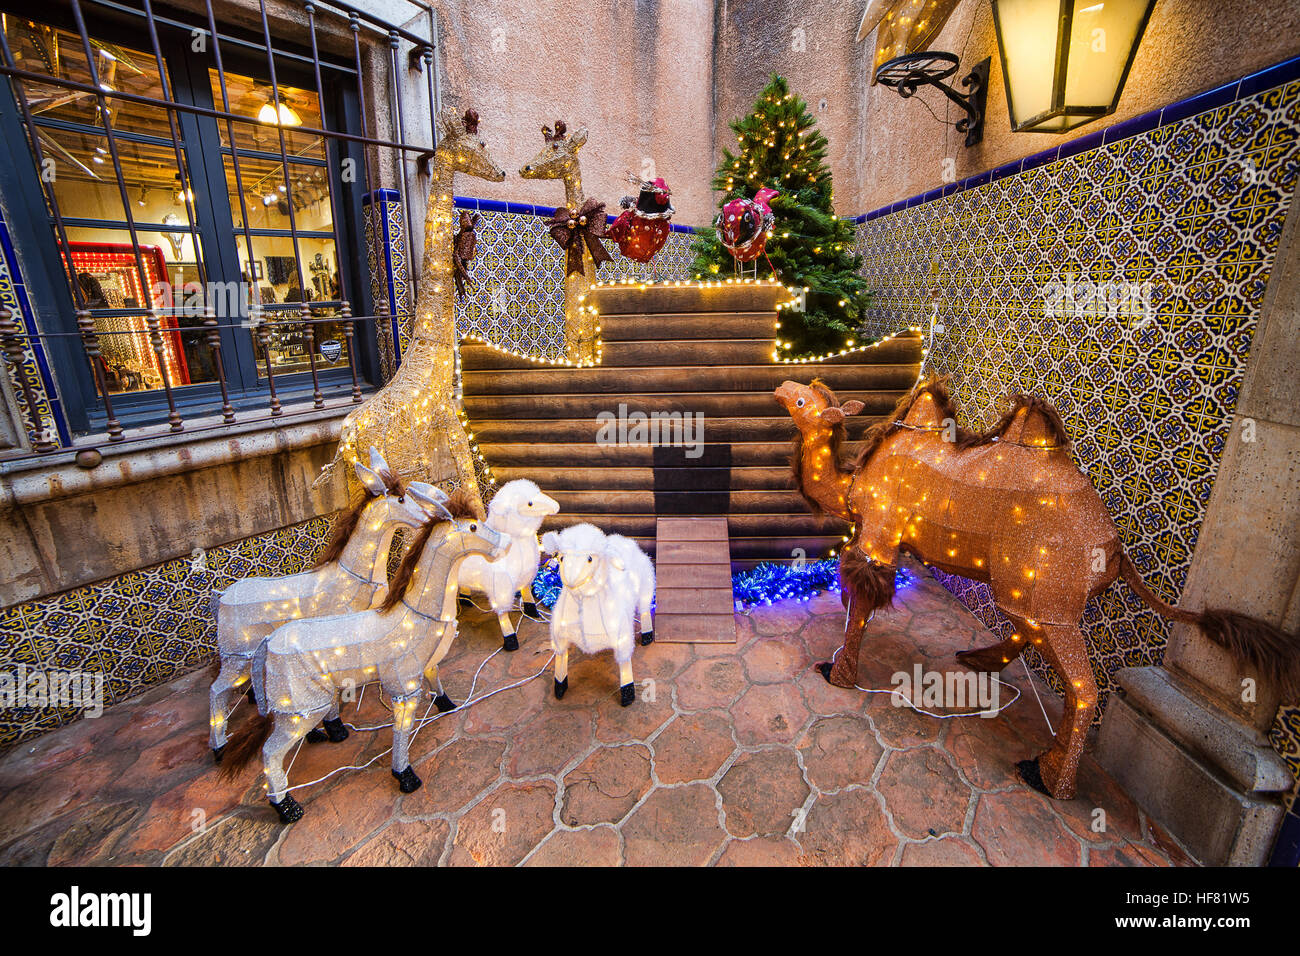 Festival Of Lights Holiday Stock Photos & Festival Of Lights Holiday ...